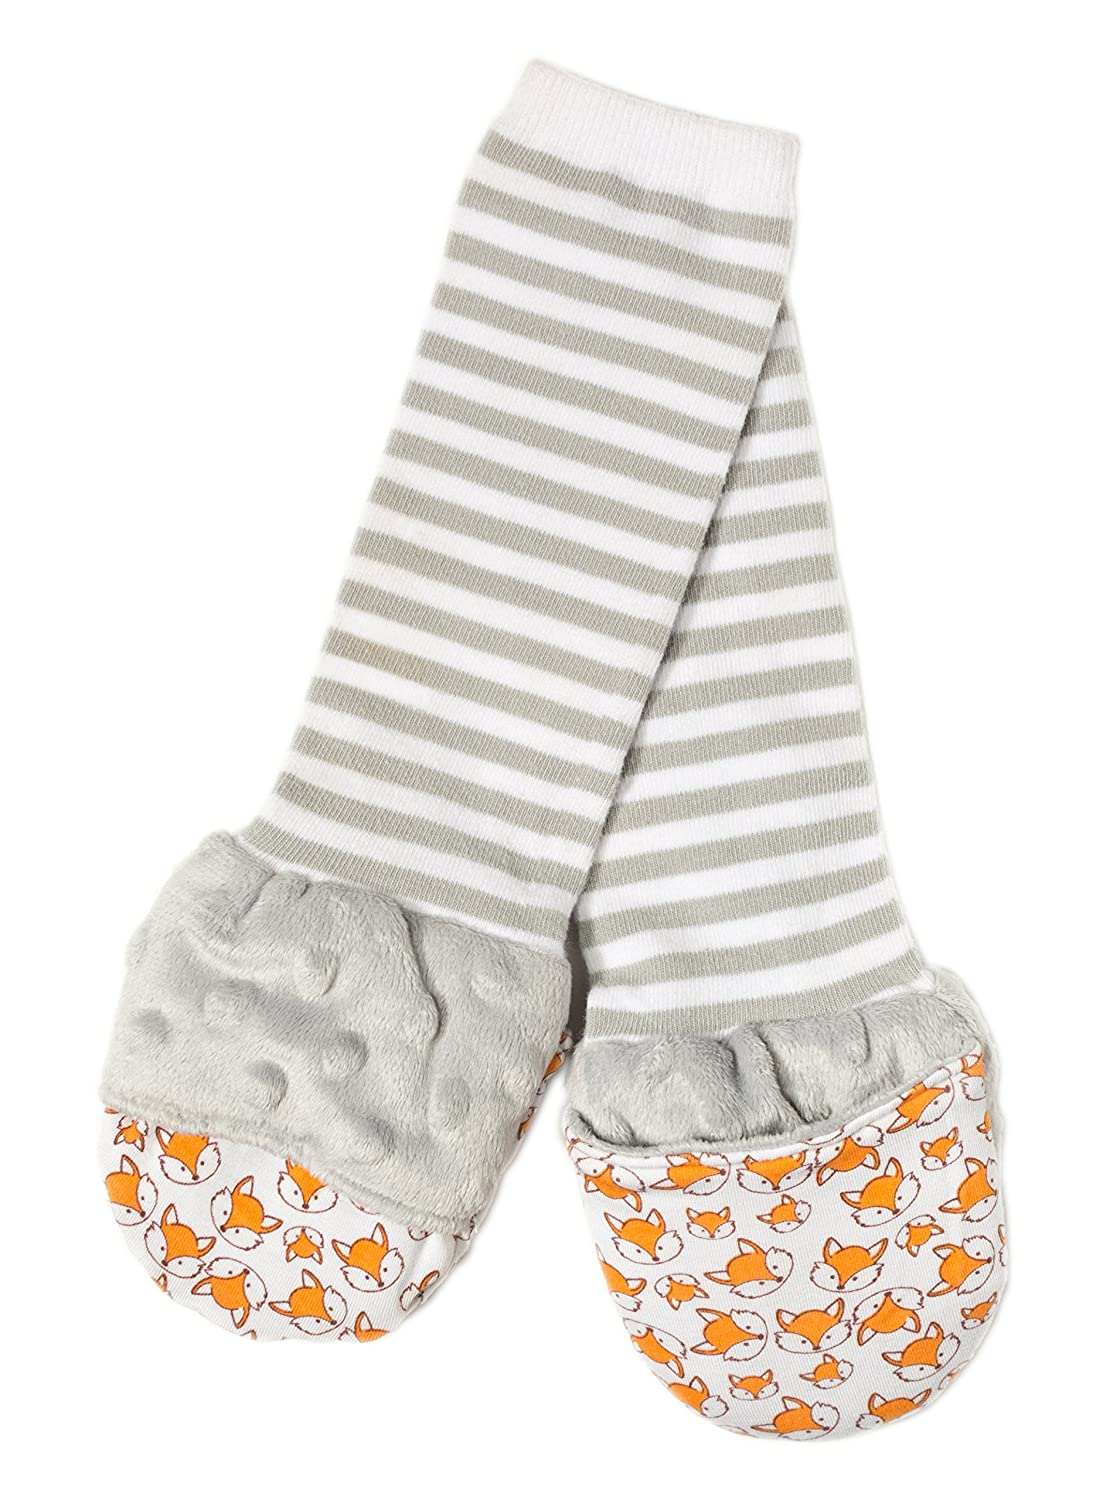 Handsocks Plushy Stay On Strap-Free No-Scratch & Warmth Baby & Kid Mittens (XS Newborn, Finn (Green Dot/Green Stripe))